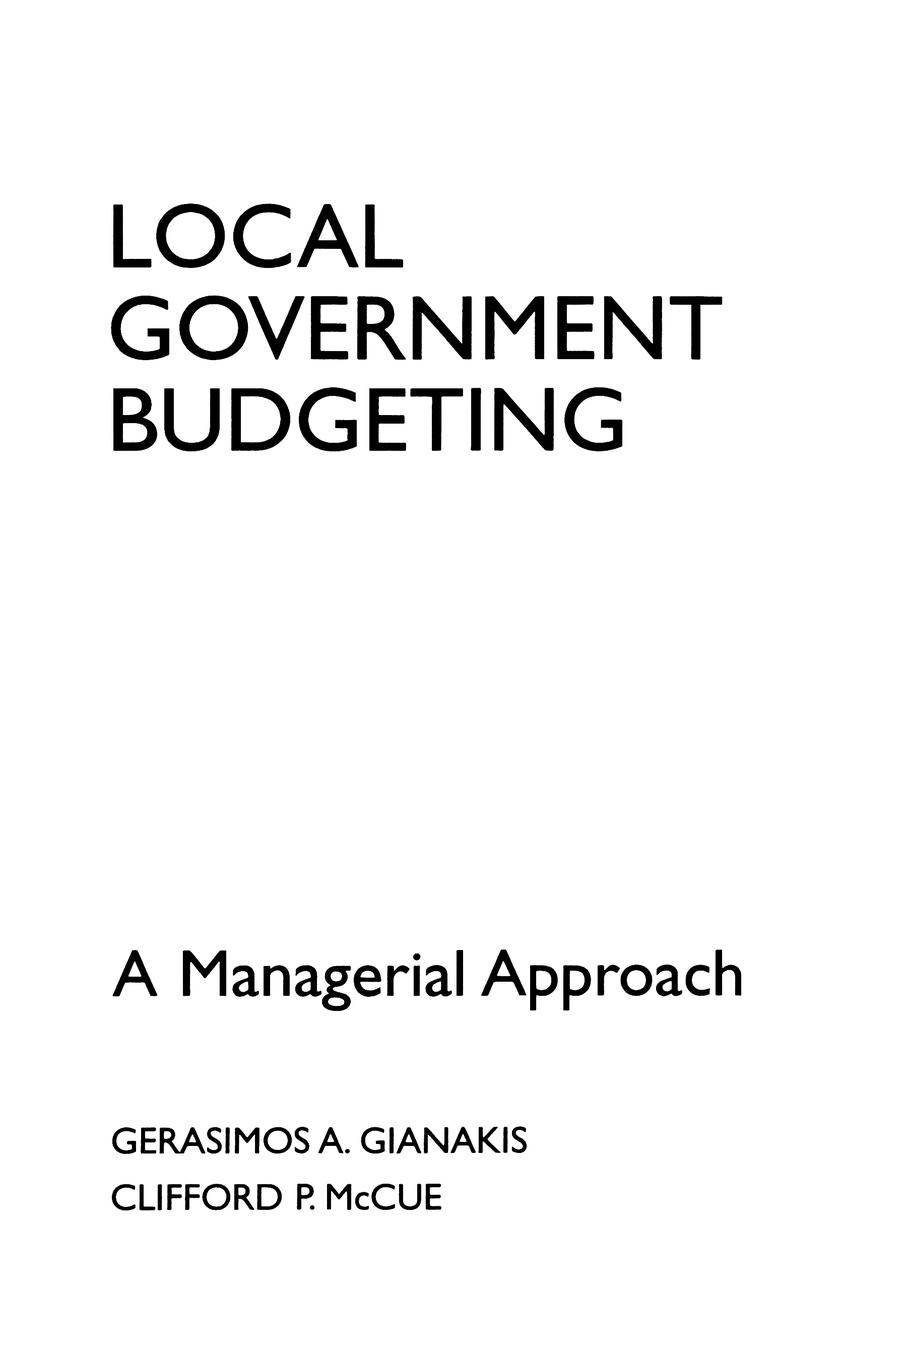 цены на Gerasimos A. Gianakis, Clifford P. McCue Local Government Budgeting. A Managerial Approach  в интернет-магазинах